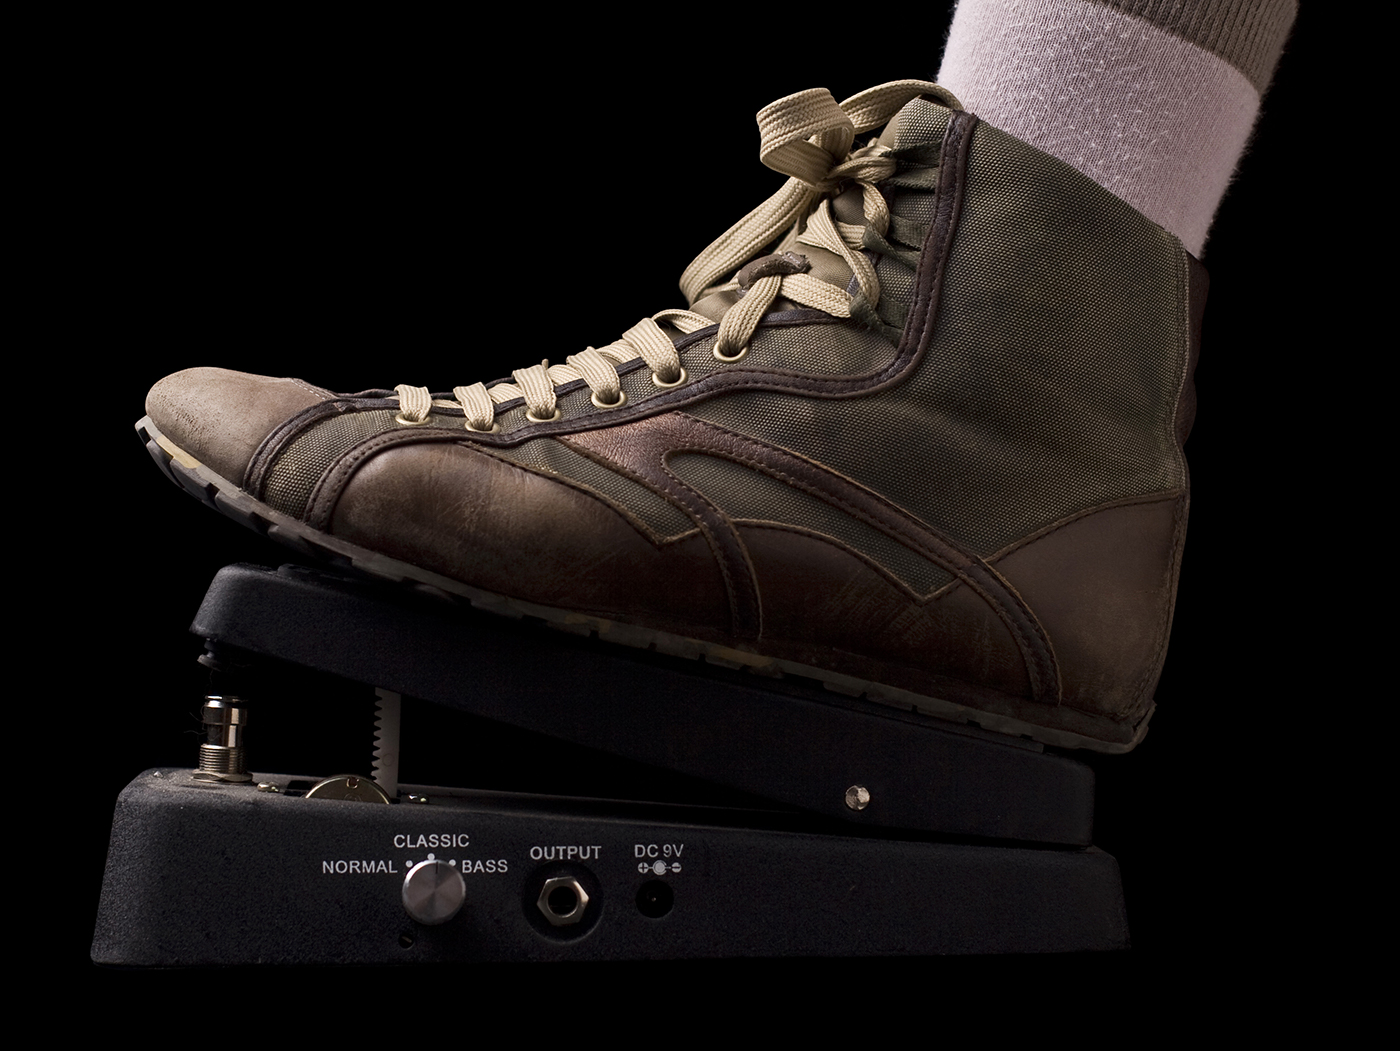 Best Wah Pedal 2019 Eight best wah pedals in 2019   Guitar.  All Things Guitar